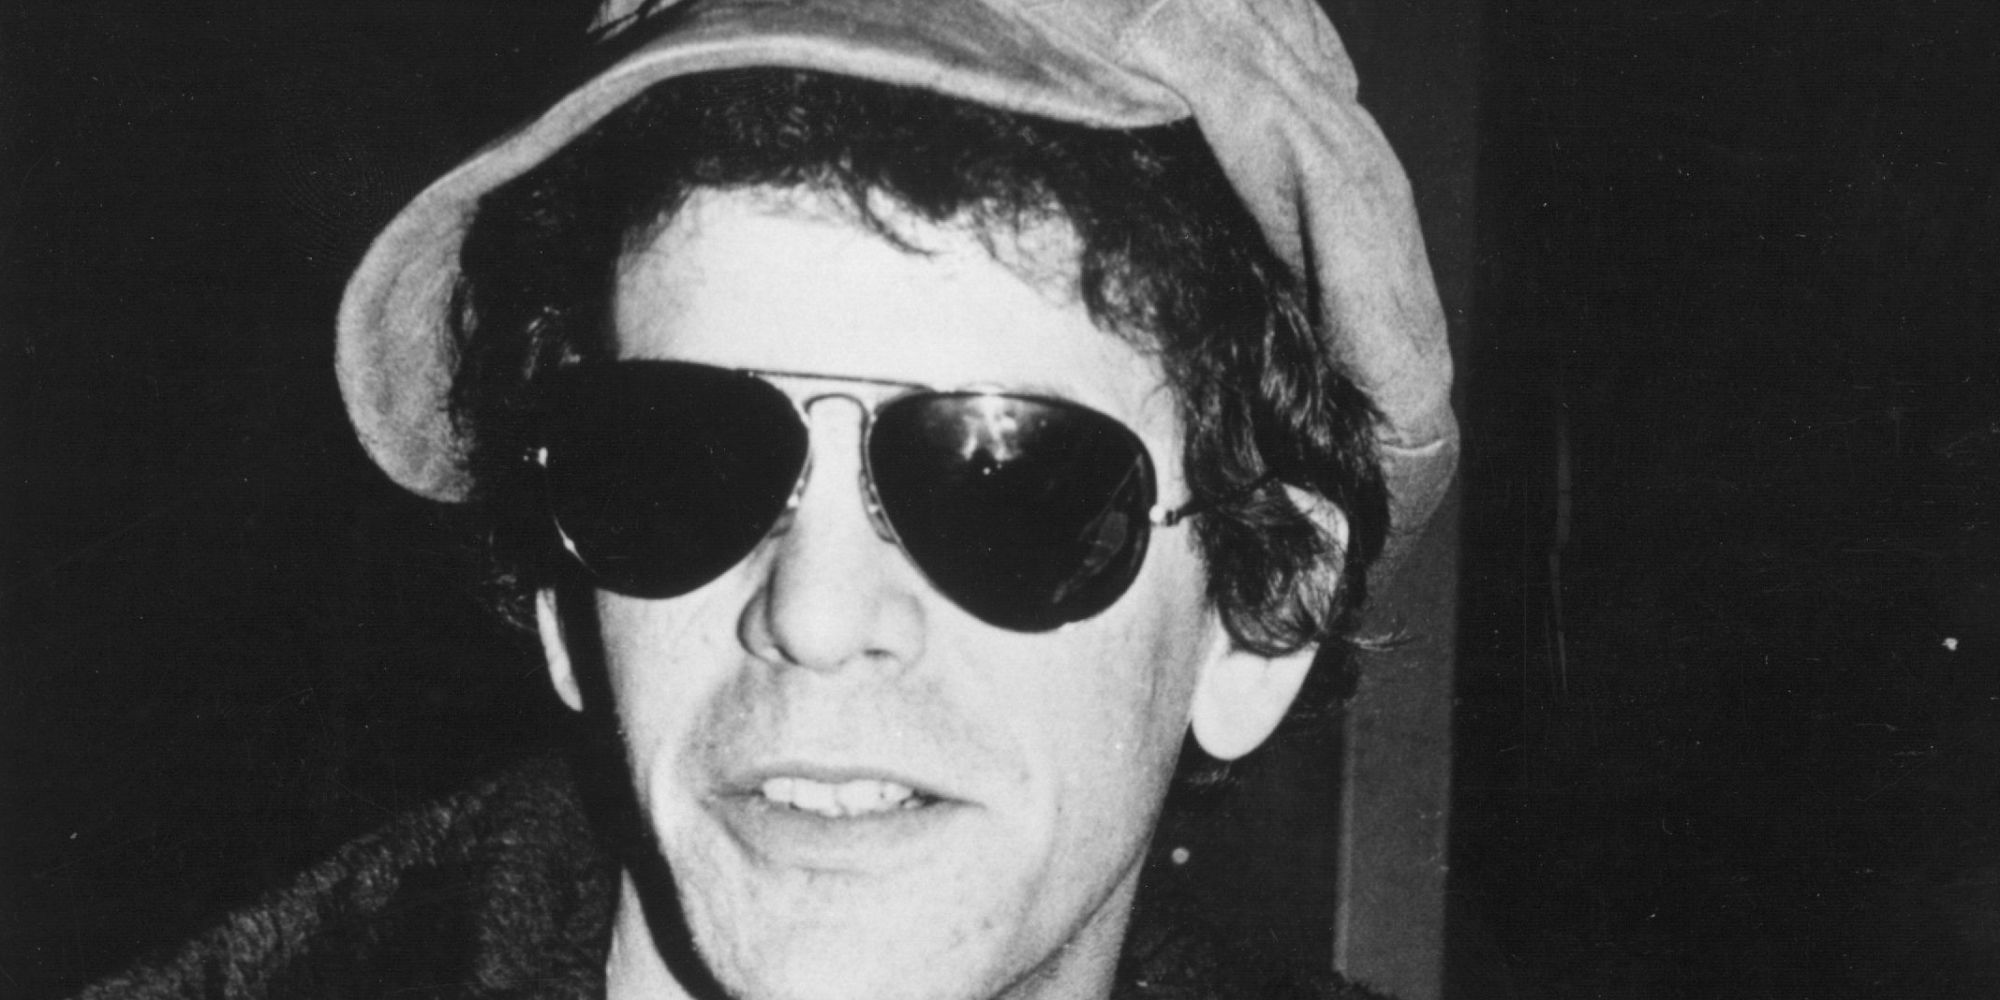 Lou Reed & Velvet Underground, The - I'm Waiting For The Man / Run, Run, Run / Candy Says